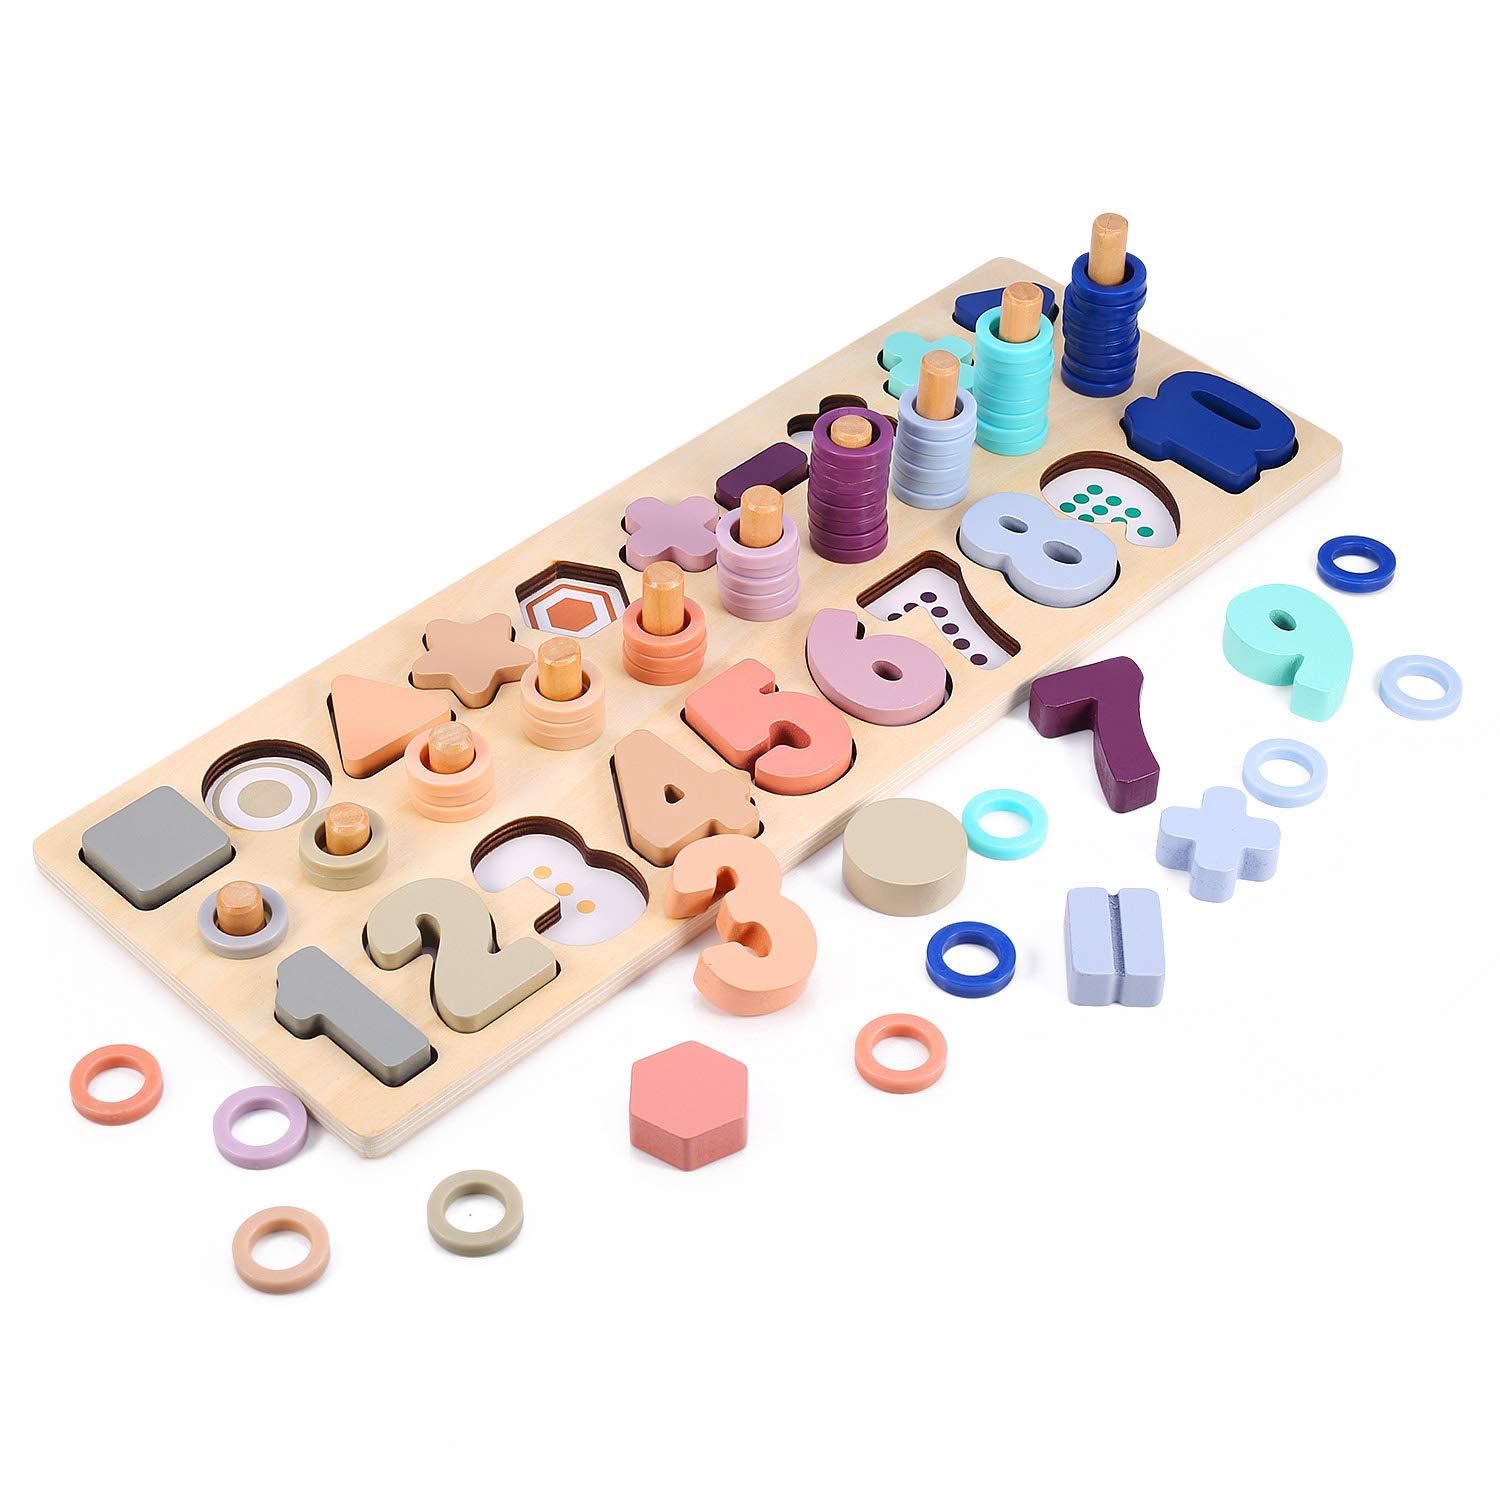 Voamuw Wooden Number Puzzle Sorting Stacking Toys for Toddlers - Shape Sorter Counting Game for Age 2 3 4 5 Year olds Kids - Preschool Education Math Stacking Block Learning Wood Chunky Jigsaw